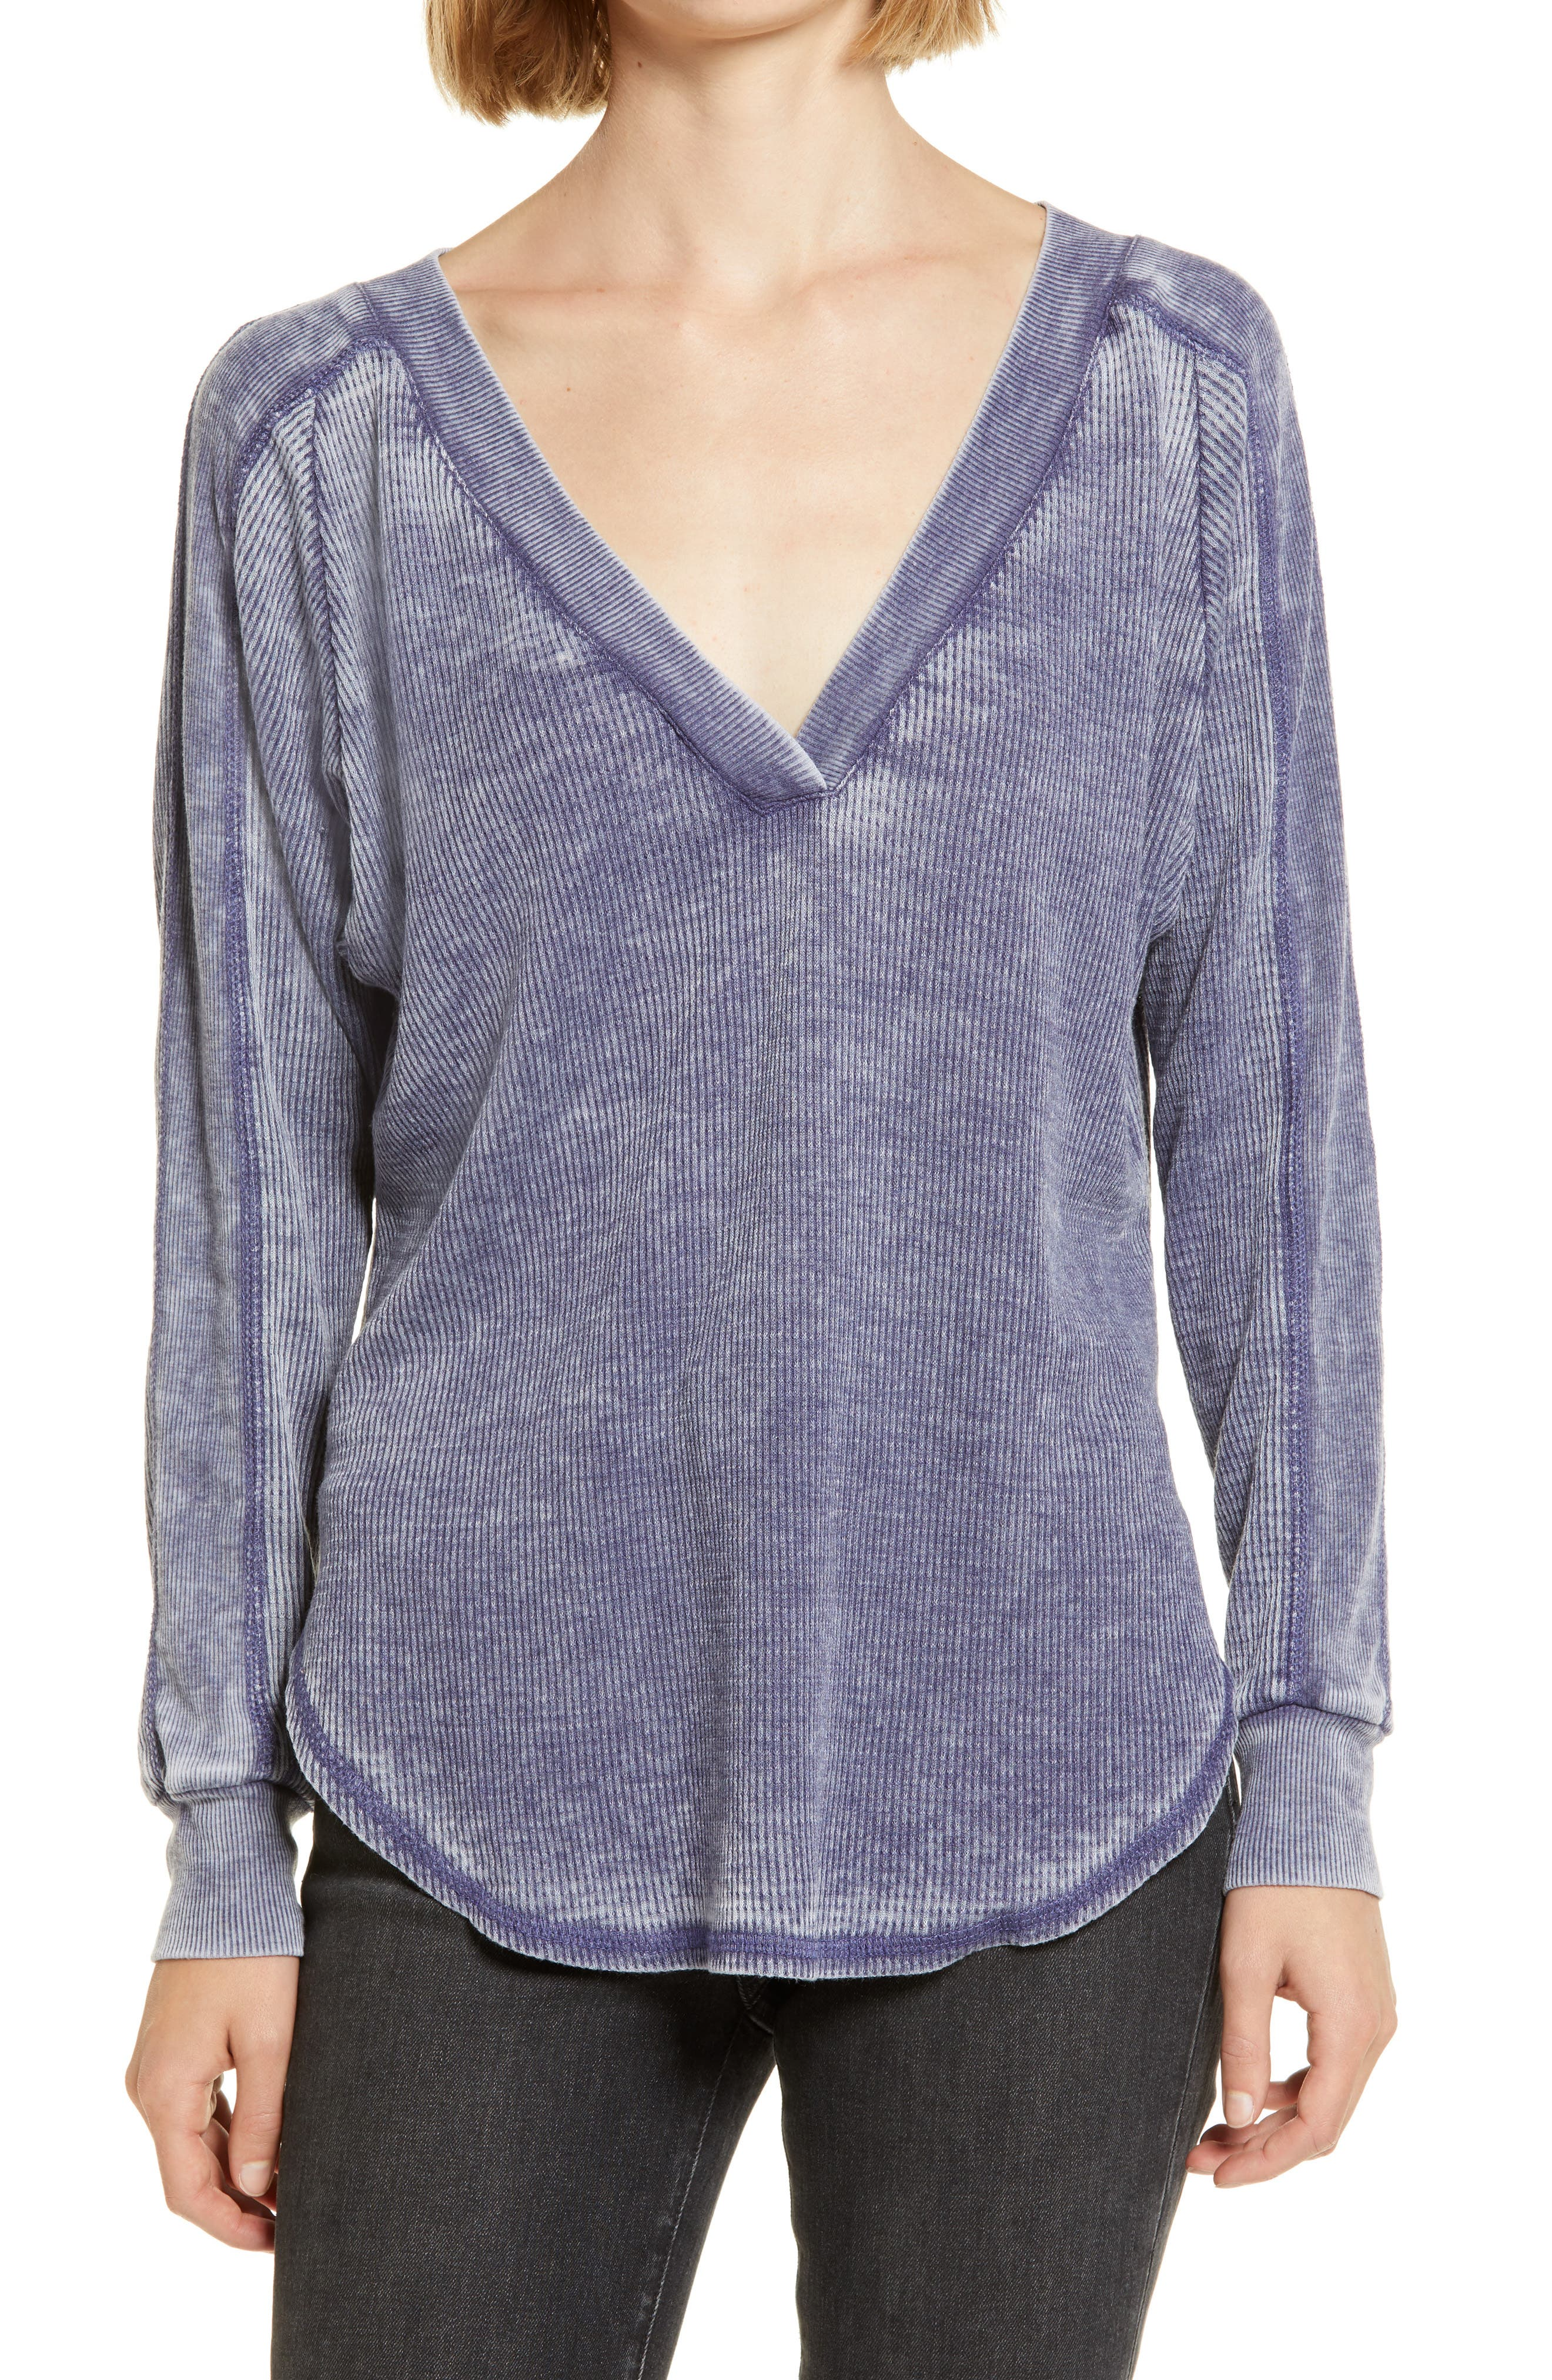 This relaxed, V-neck top in a soft thermal knit with worn-in details is an essential staple for your cool-weather wardrobe. When you buy Treasure & Bond, Nordstrom will donate 2.5% of net sales to organizations that work to empower youth. Style Name: Treasure & Bond Thermal V-Neck Top. Style Number: 6063607. Available in stores.